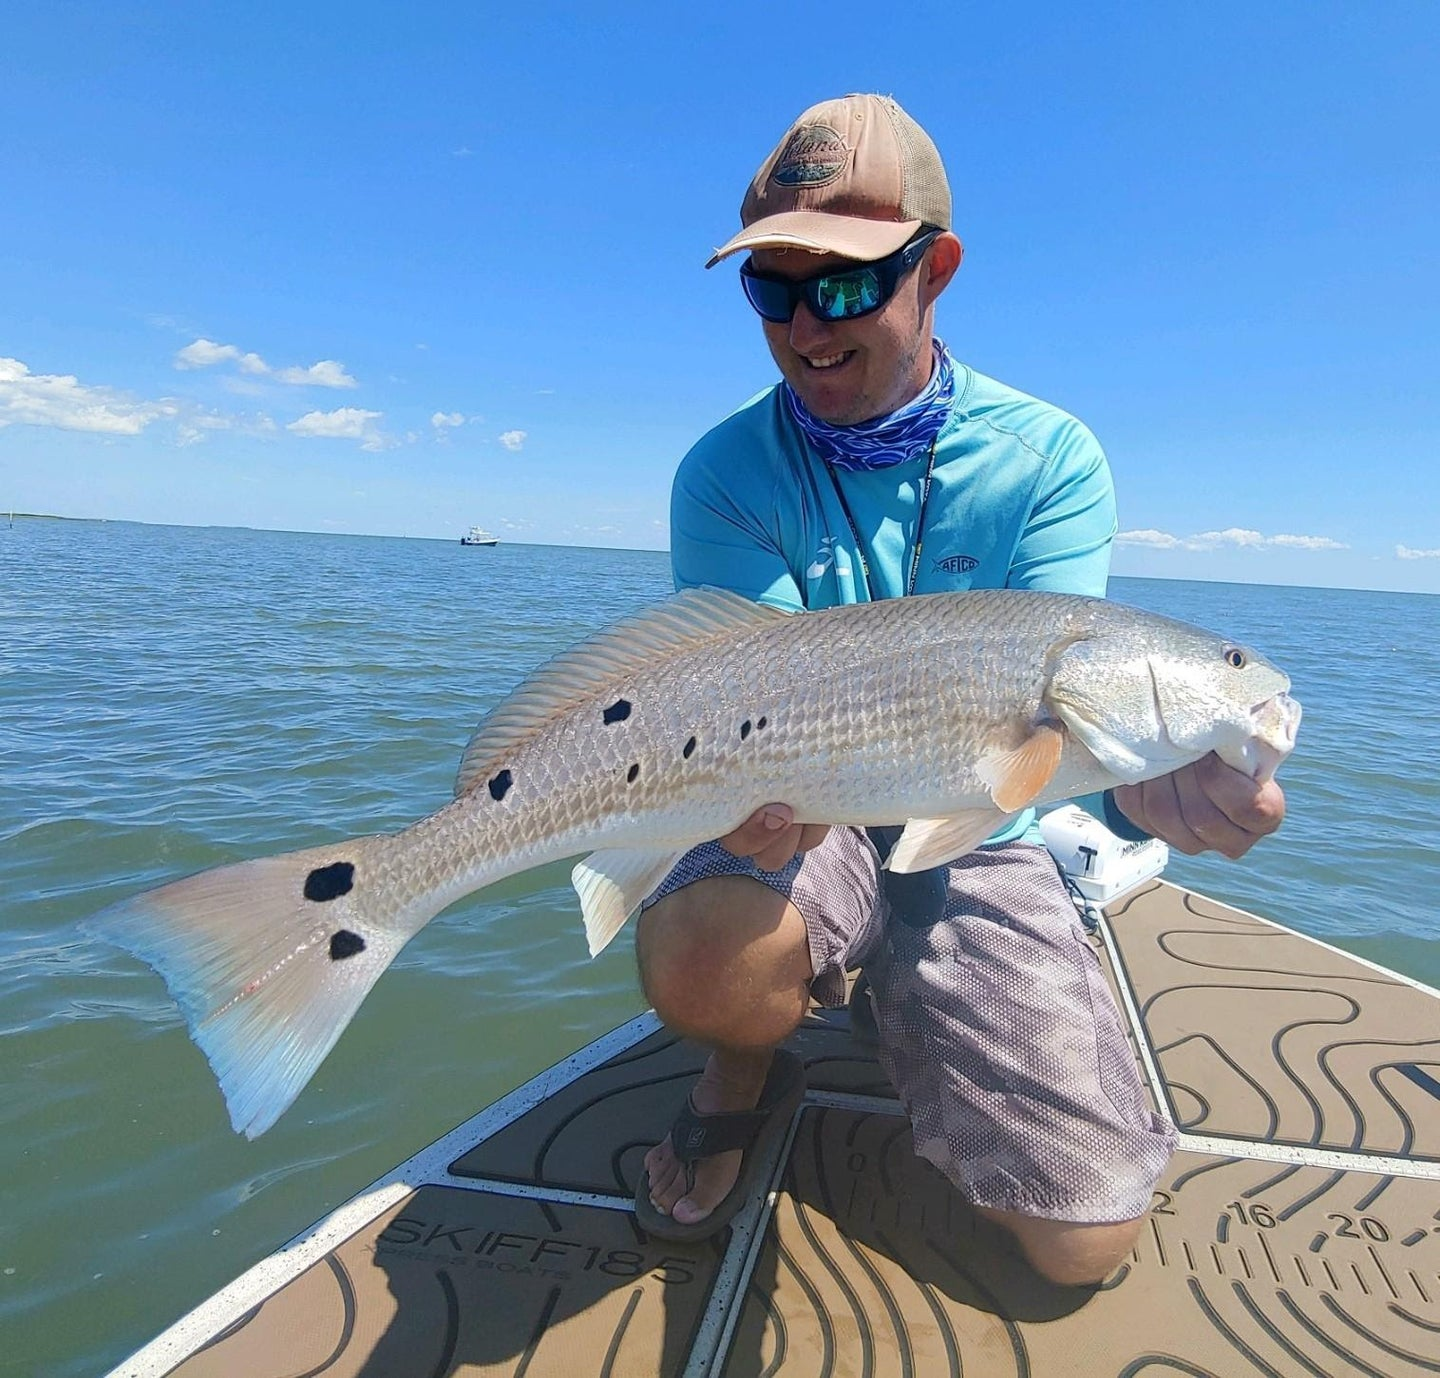 Puppy drum caught with Shimano Nasci